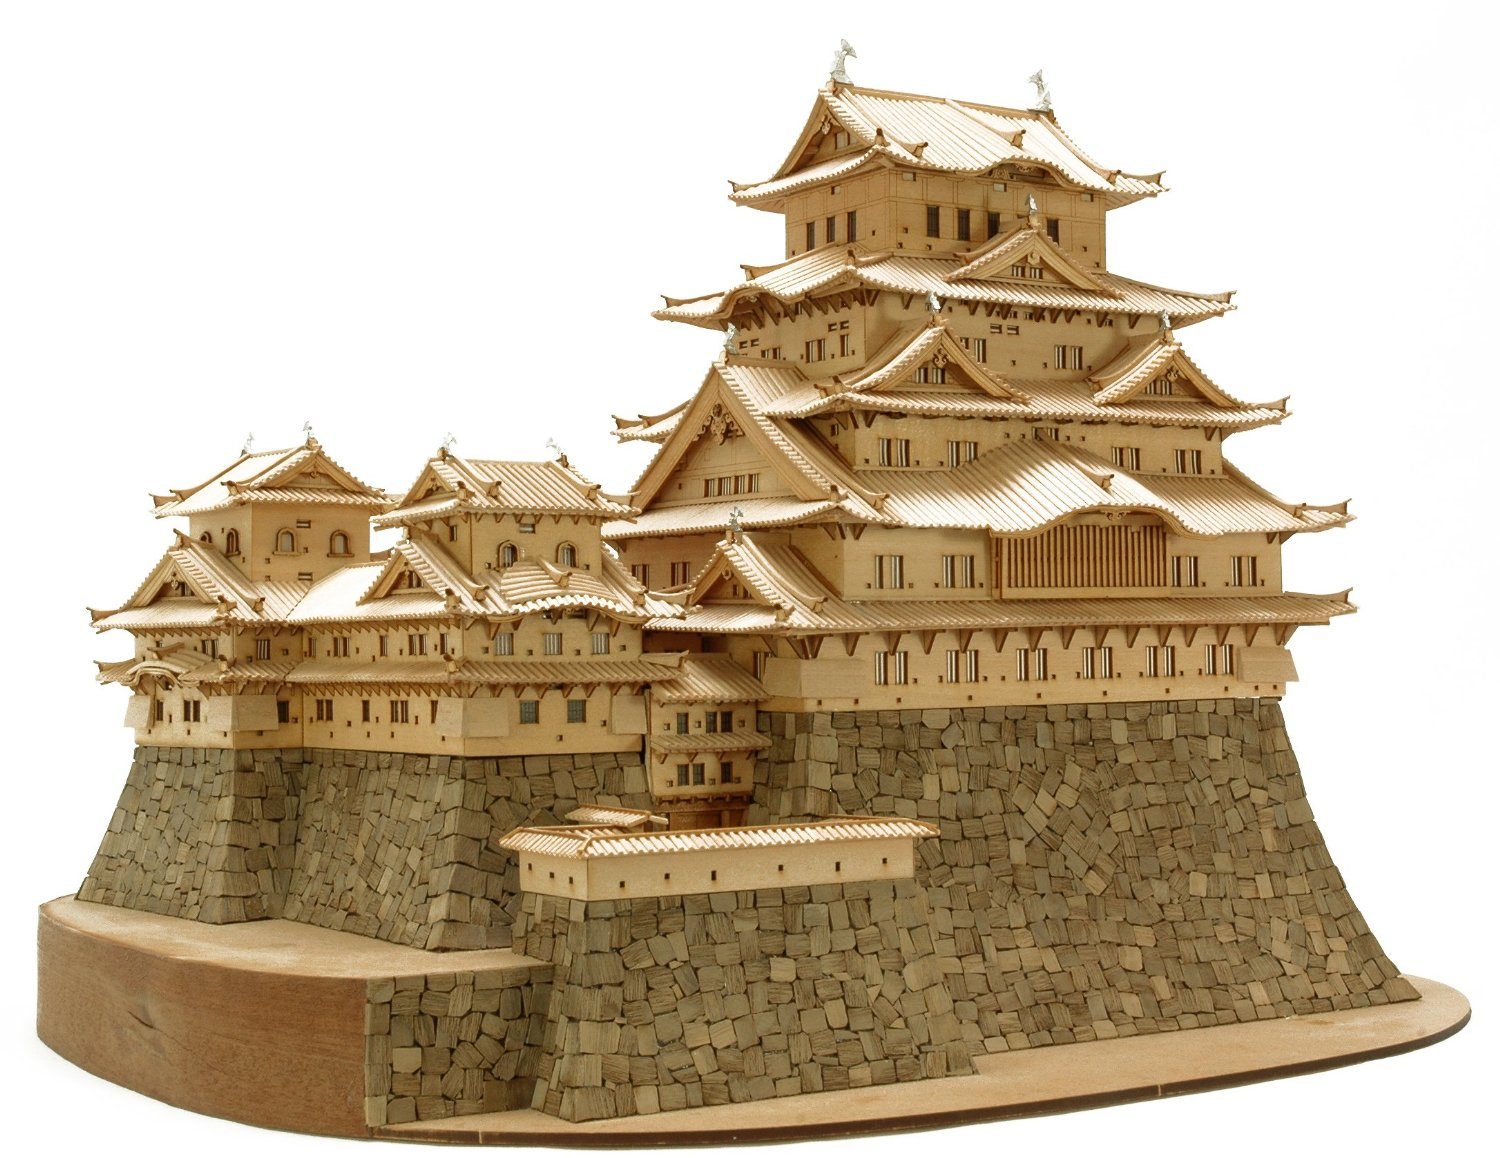 Alexa Skill besides 3196588 Occidental College Prof Discusses Scotus Gay Marriage Ruling together with Woodyjoe Himeji Castle Model Kit 1150 furthermore On Air in addition Review Wd Tv Play Is A Set Top Box Made For Streaming Junkies. on tunein radio amazon